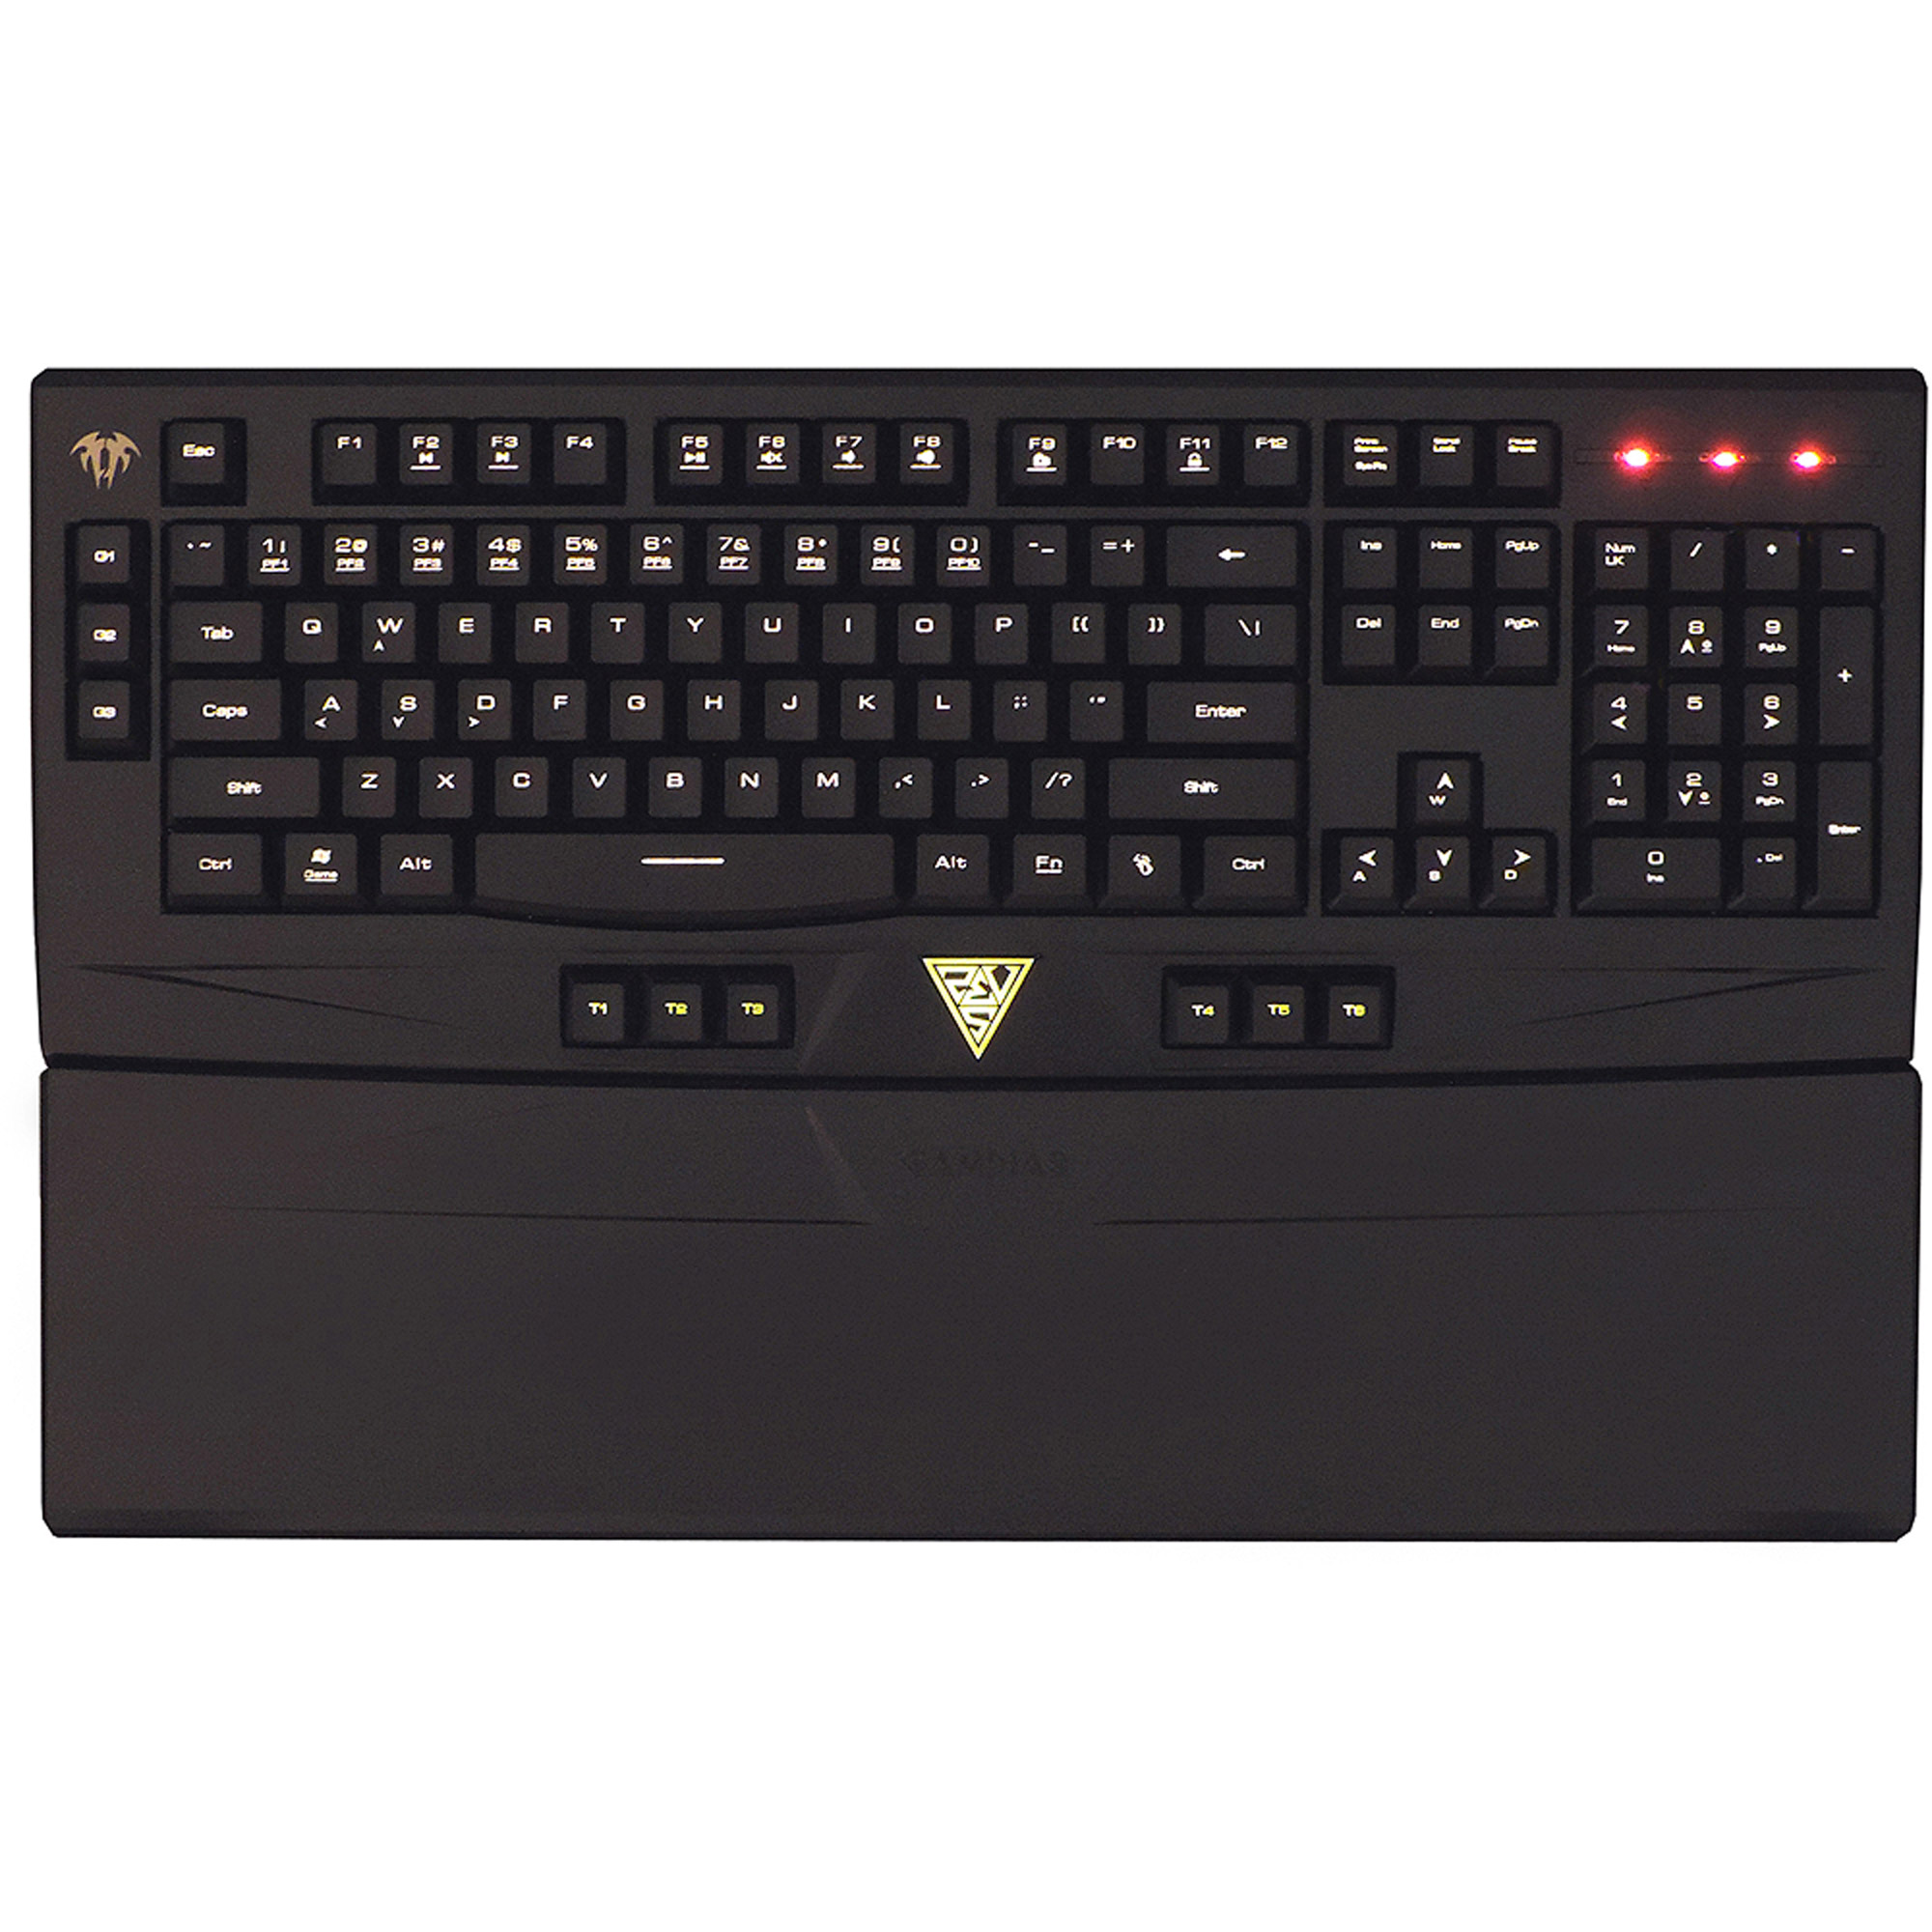 Kworld GAMDIAS ARES Gaming Keyboard, GKB6010